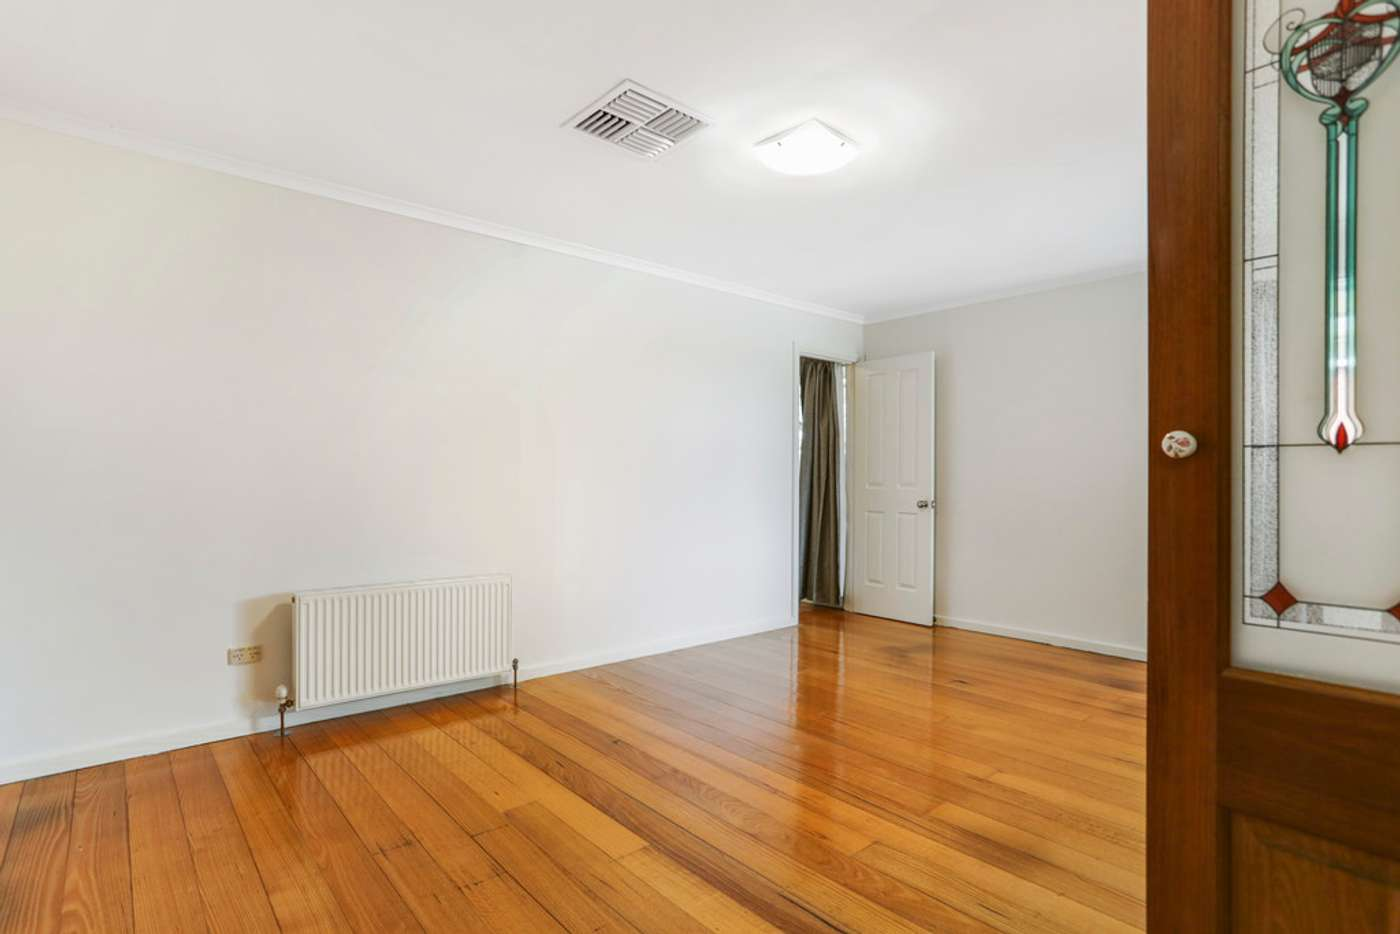 Fifth view of Homely house listing, 11 Lola Street, Mulgrave VIC 3170